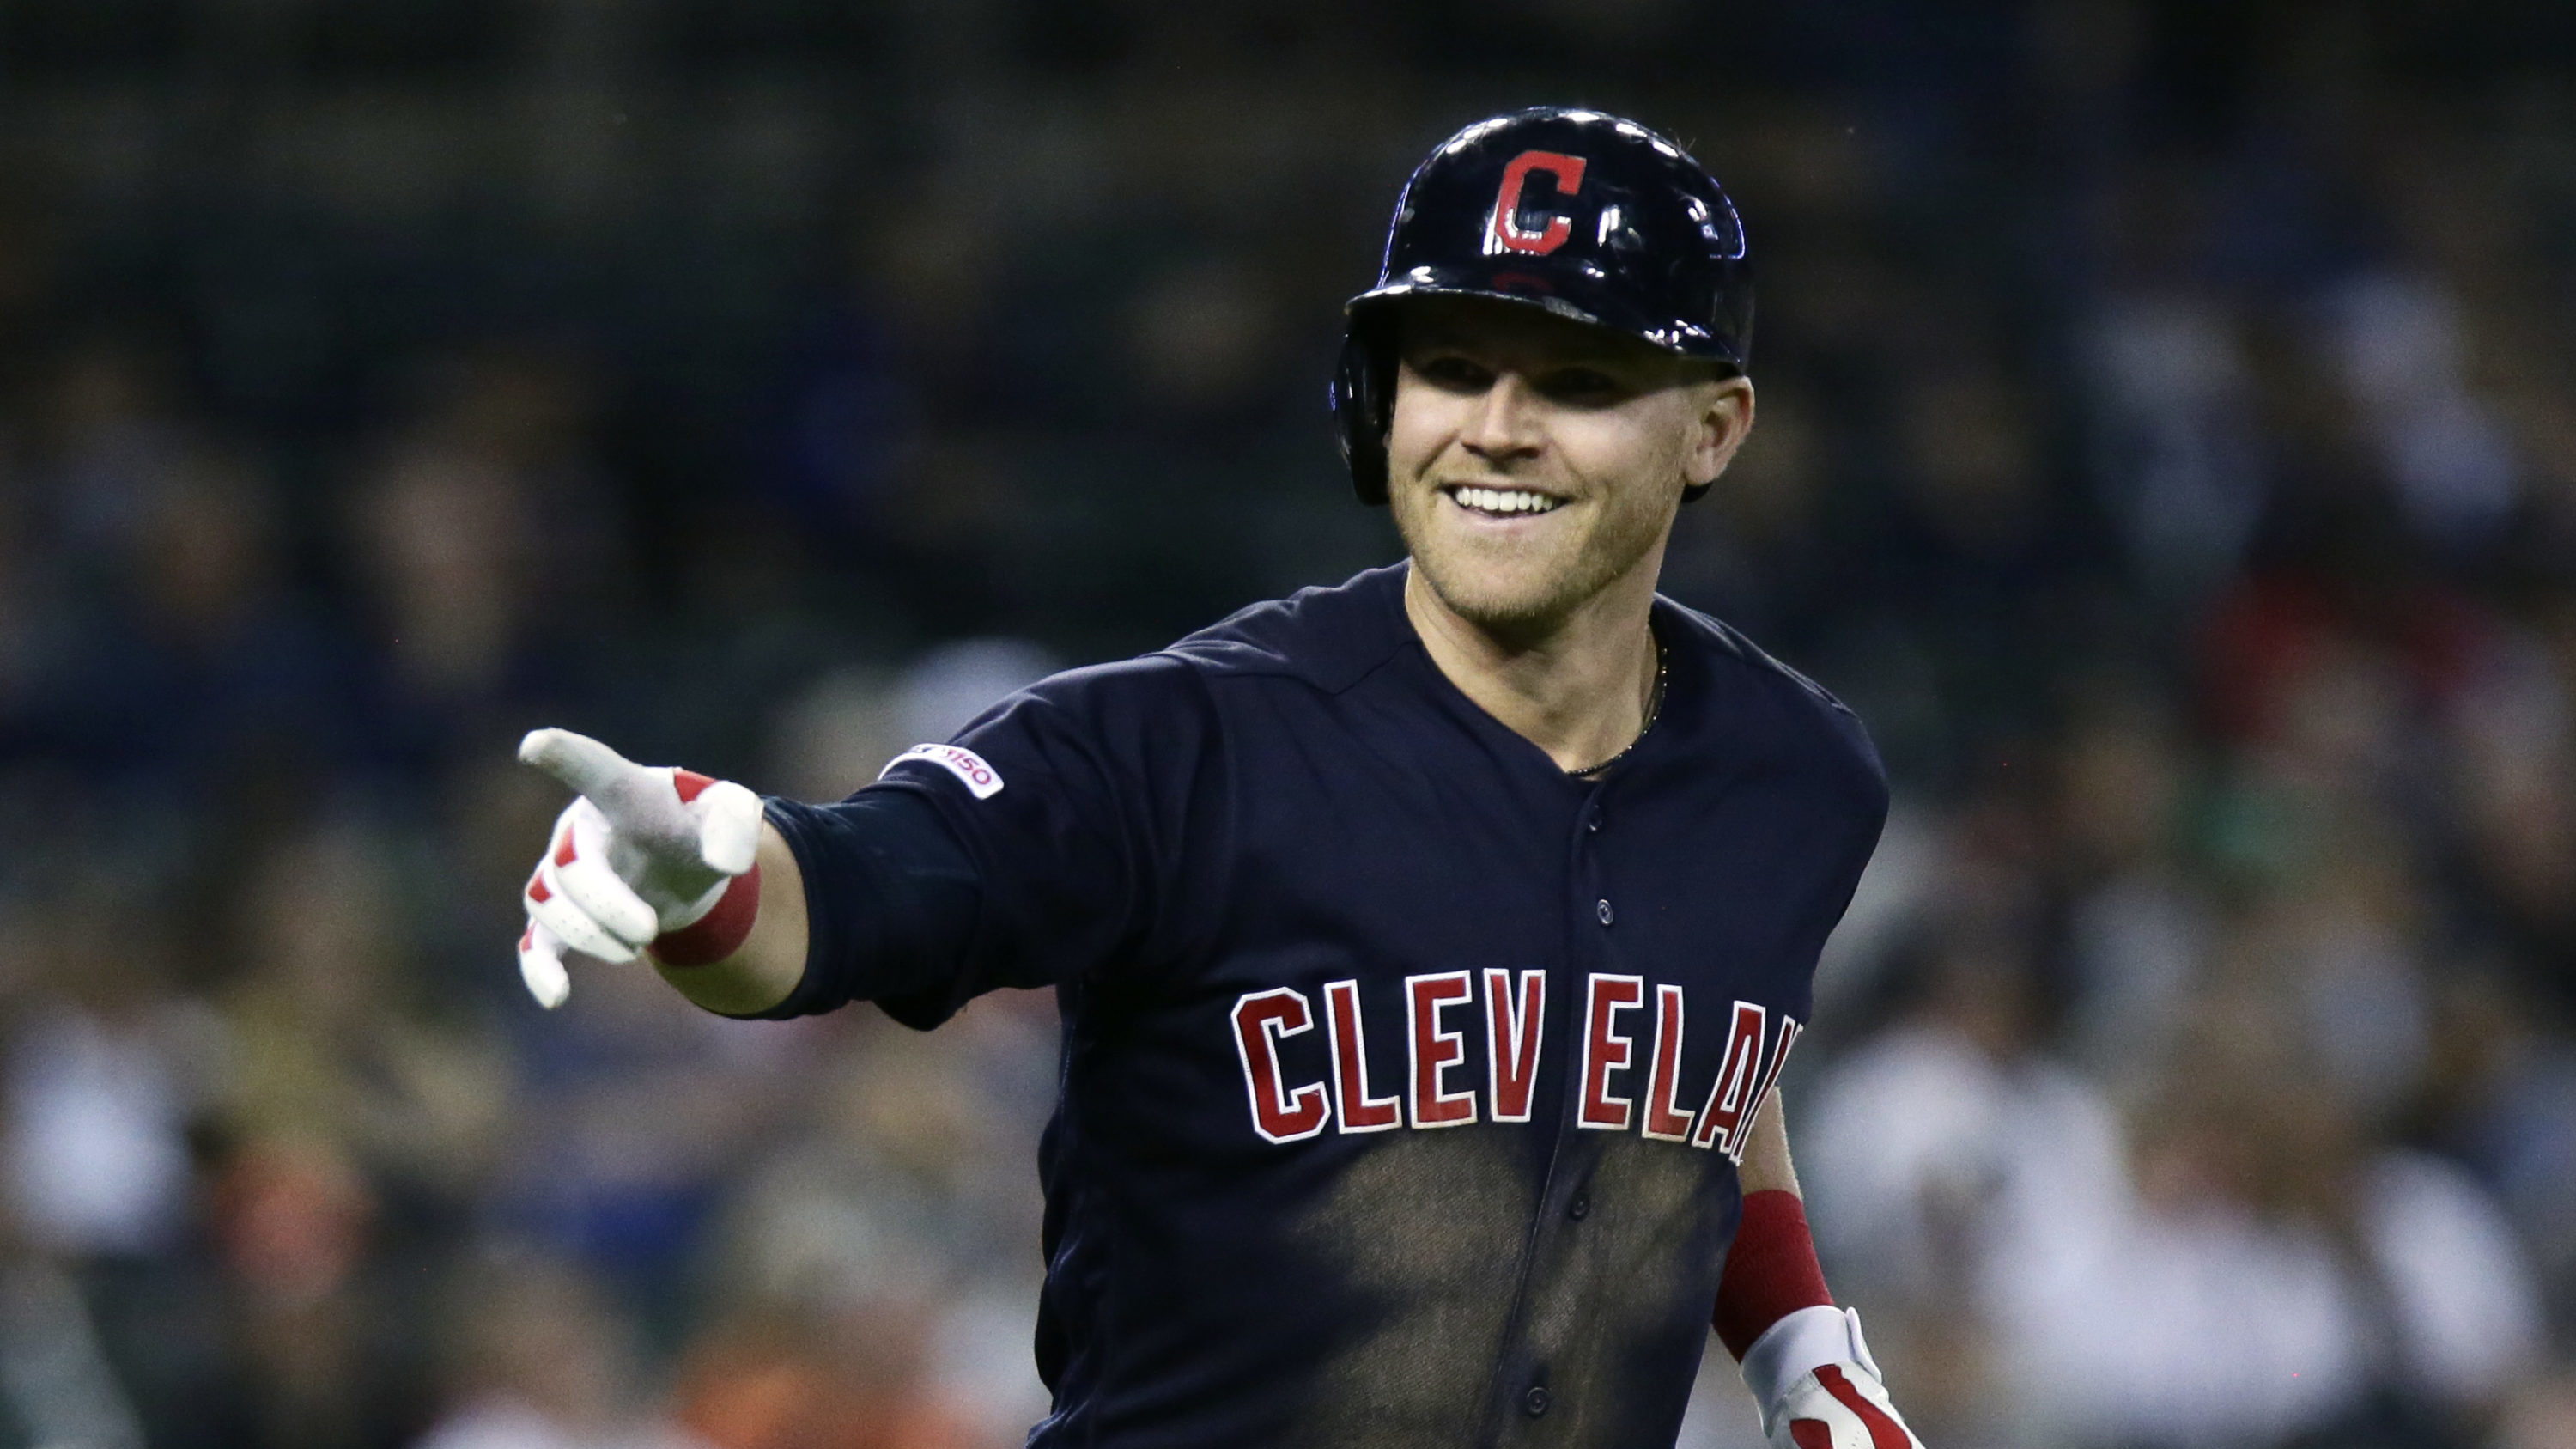 Cleveland MLB team to drop 'Indians' from its name